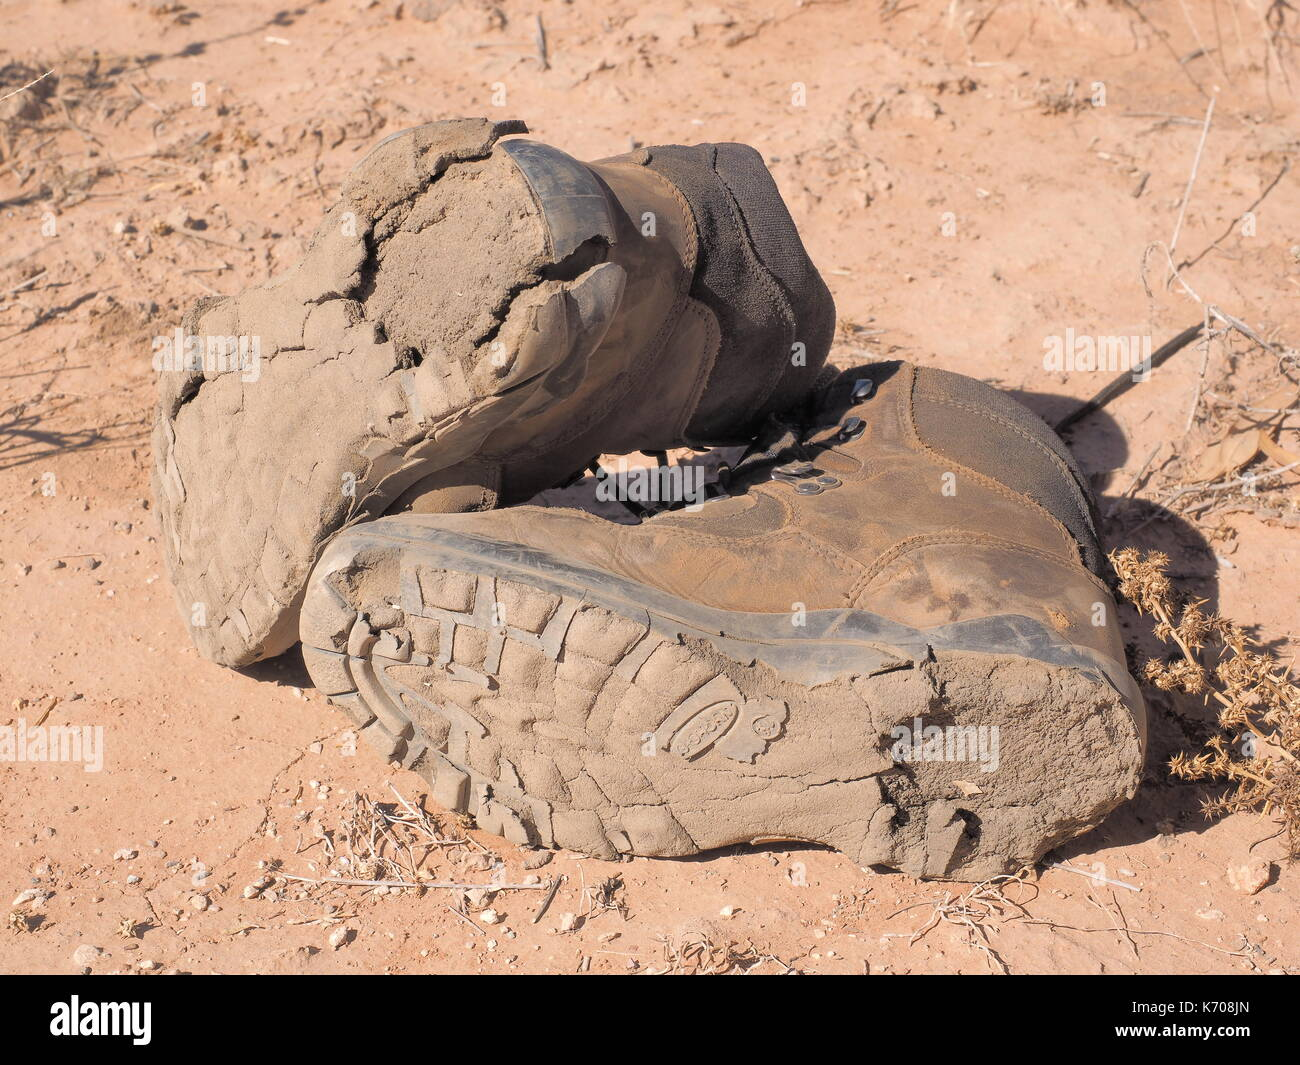 Pair of hiking boots with completely destroyed soles at MacDonnell ranges near Alice Springs, Northern Territory, Australia 2017 - Stock Image